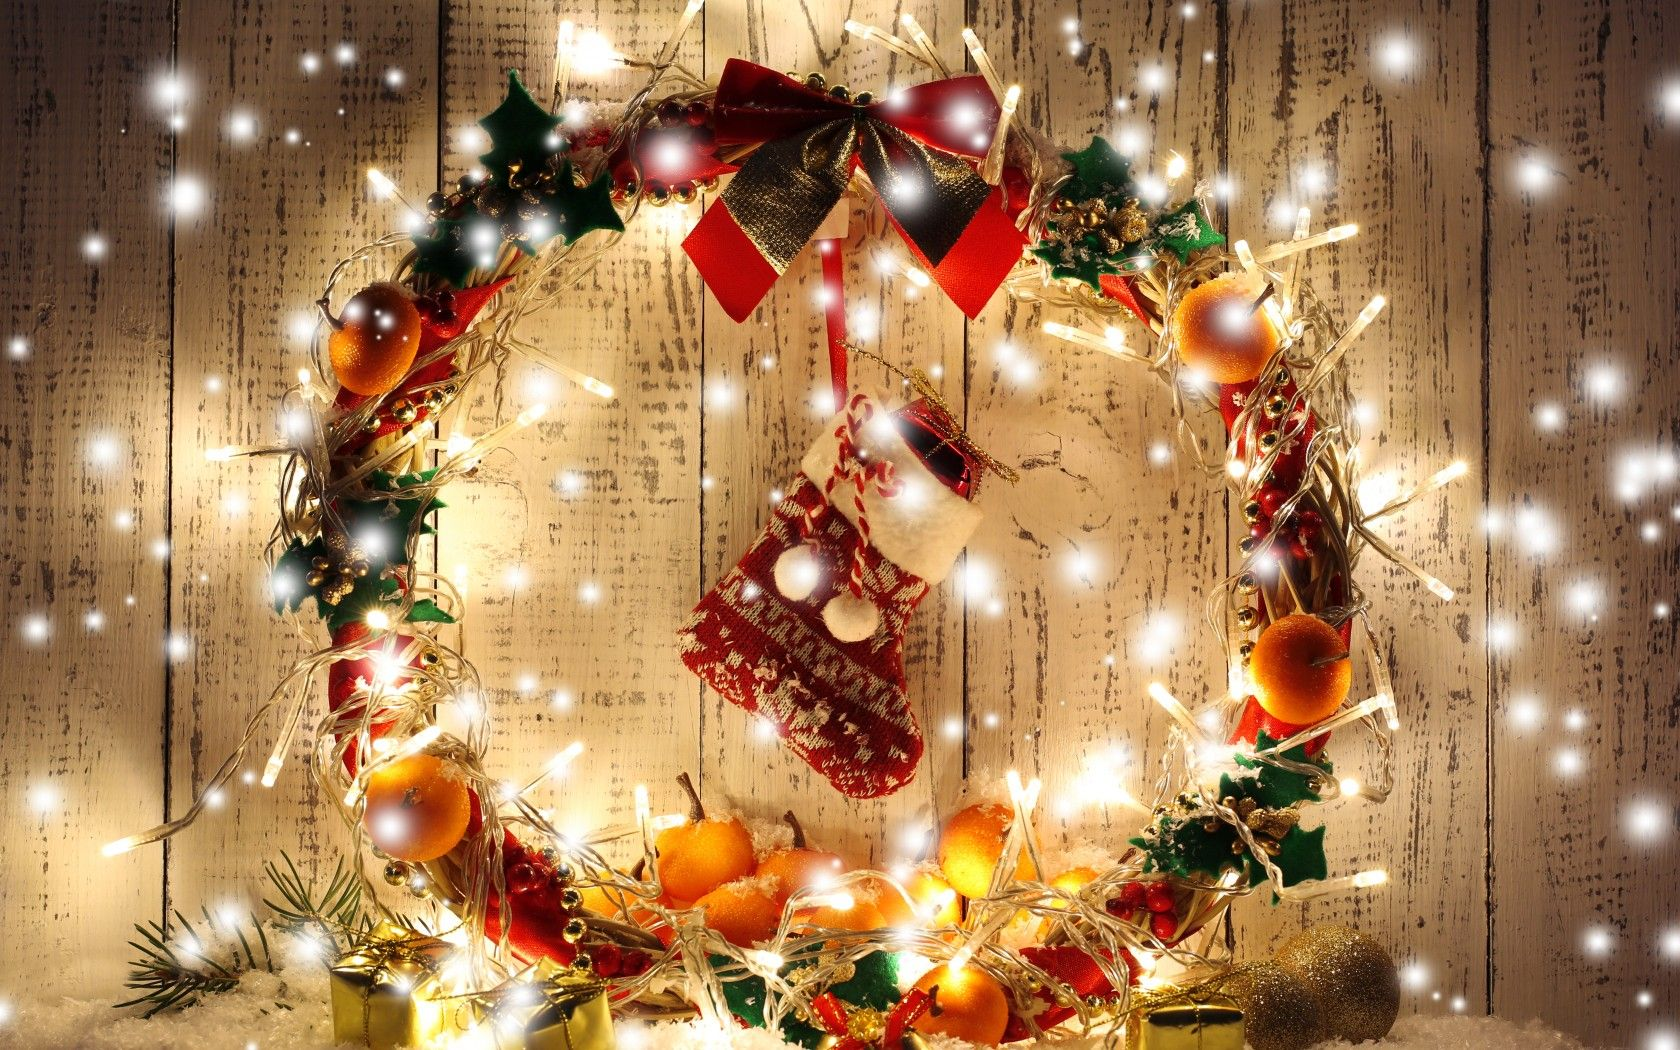 christmas-new-year-ornaments-garland-lights.jpg 1.680×1.050 pixel